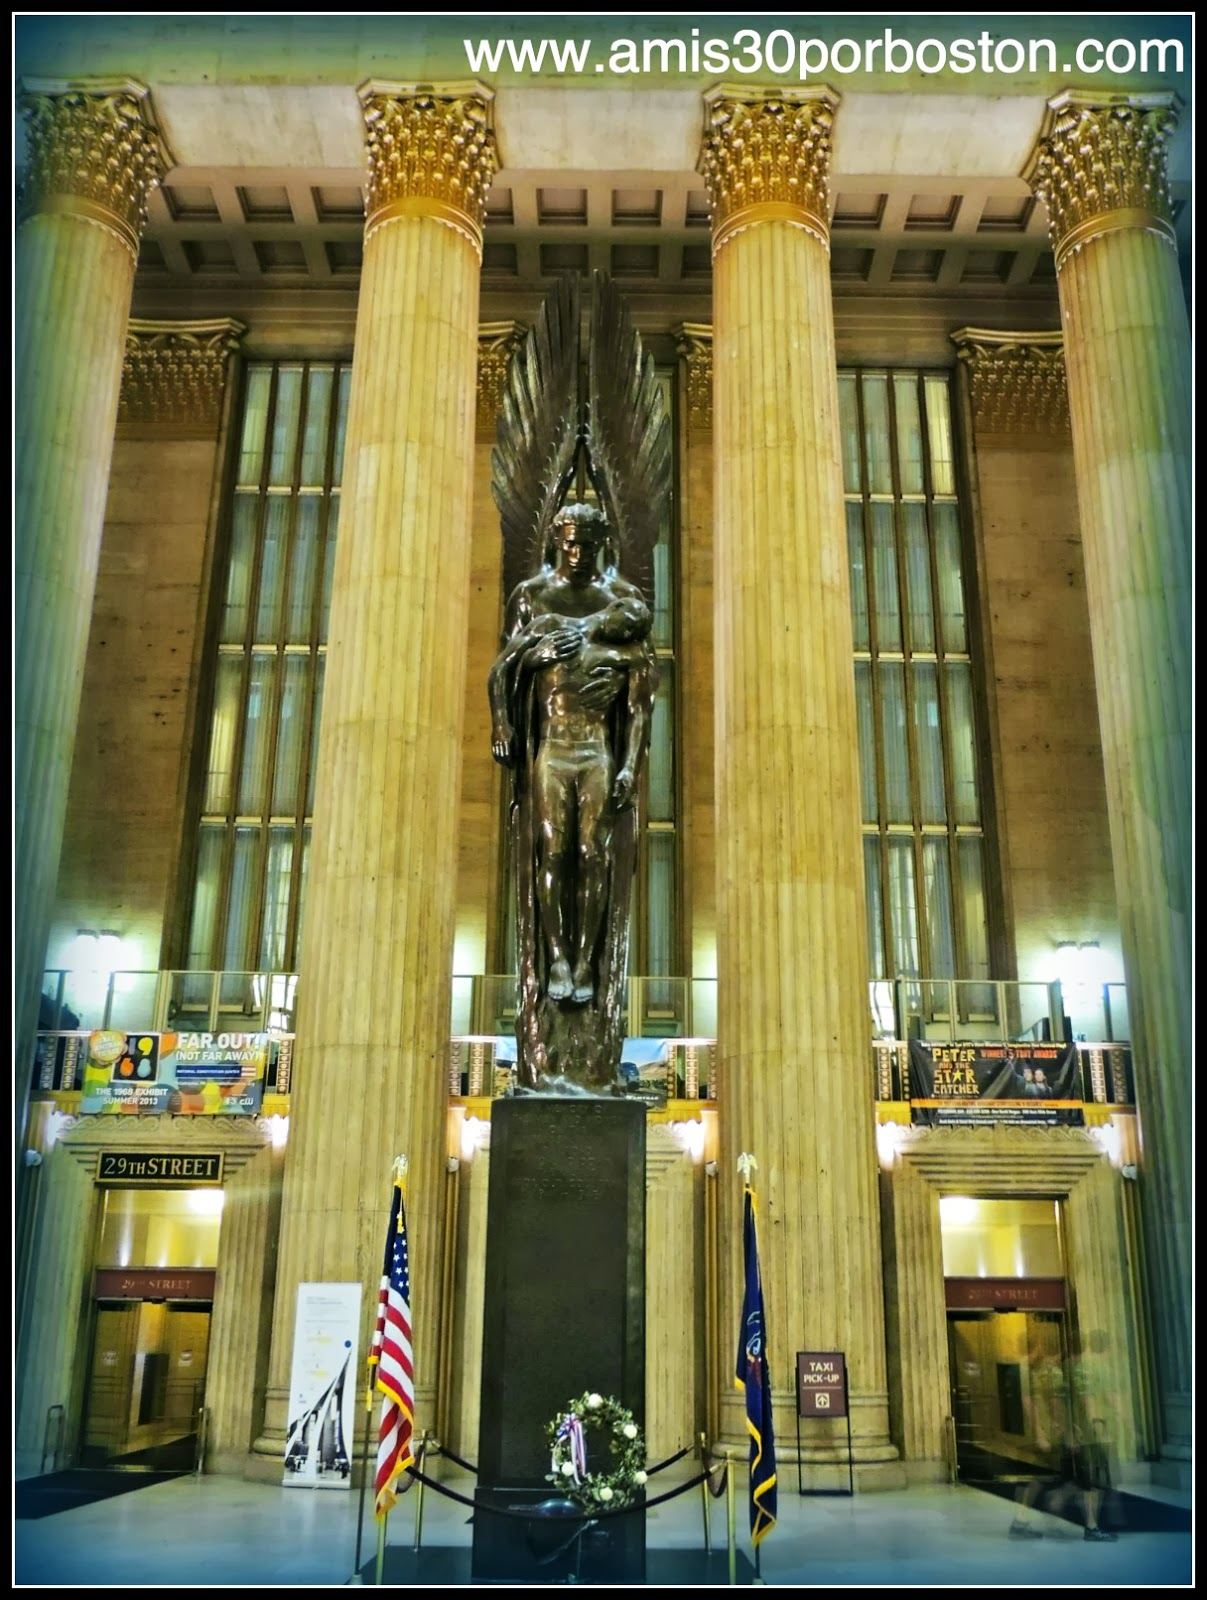 Filadelfia: Philadelphia 30th Street Station